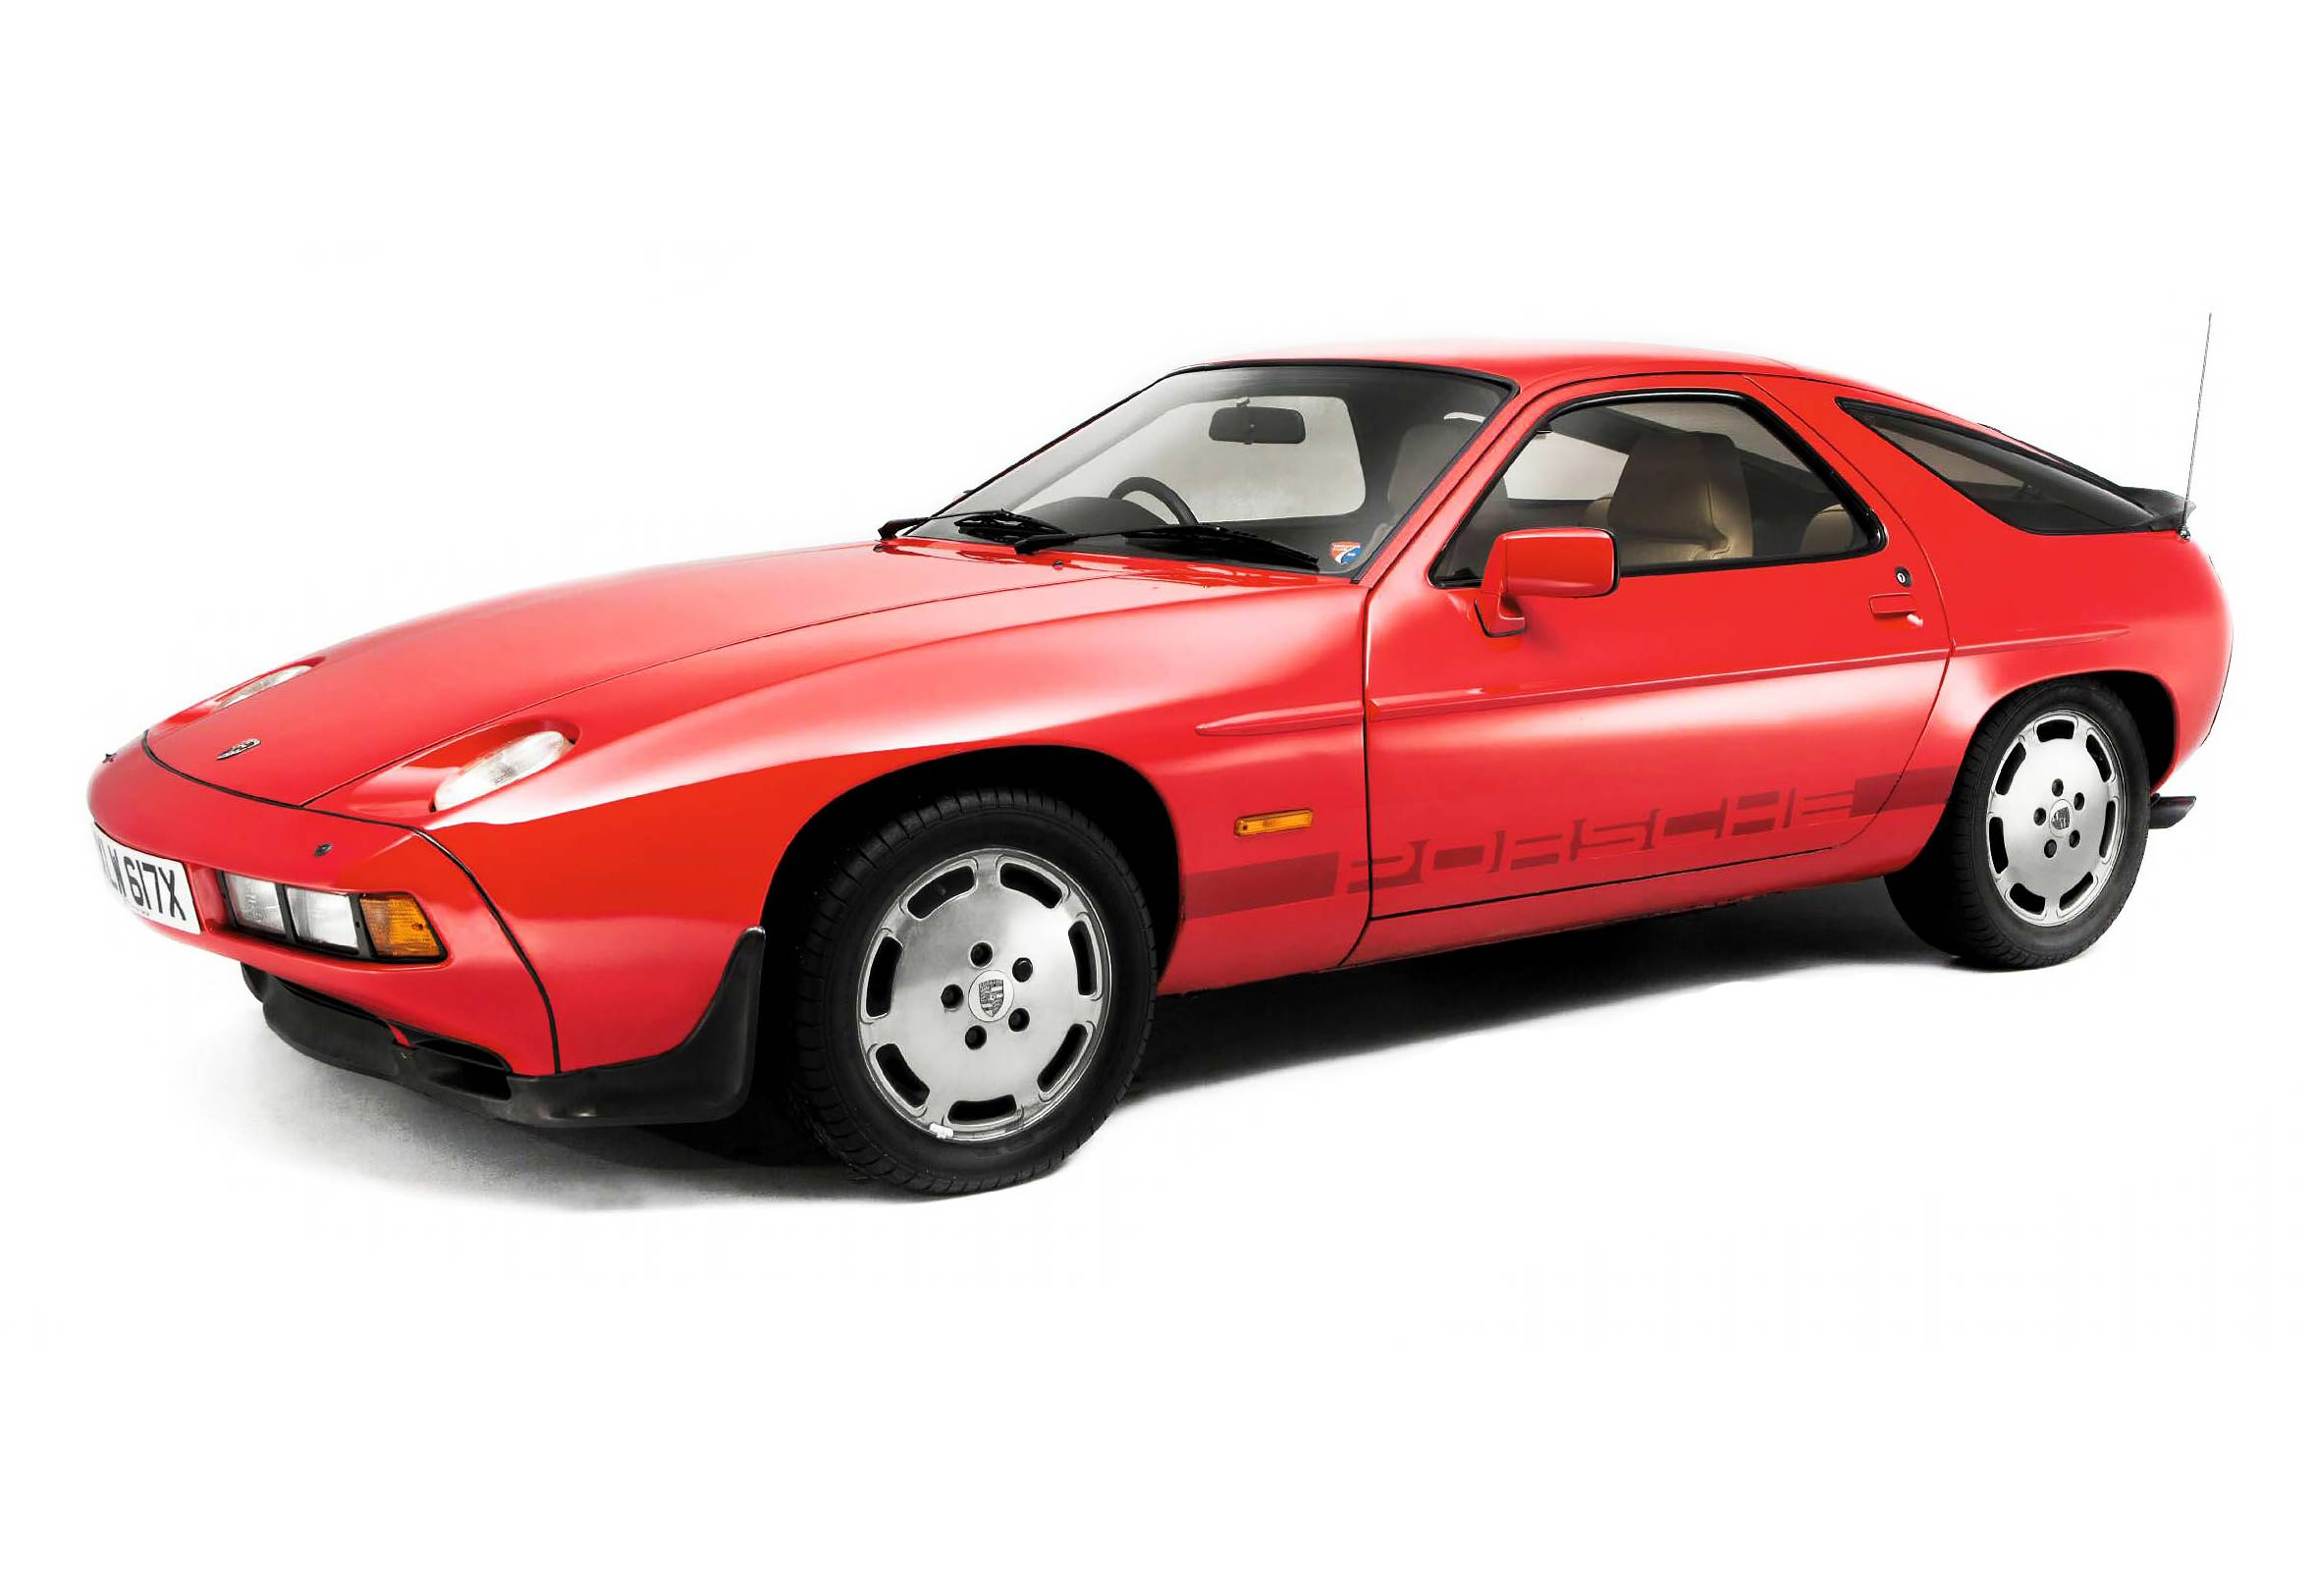 Six steps to buying a Porsche 928